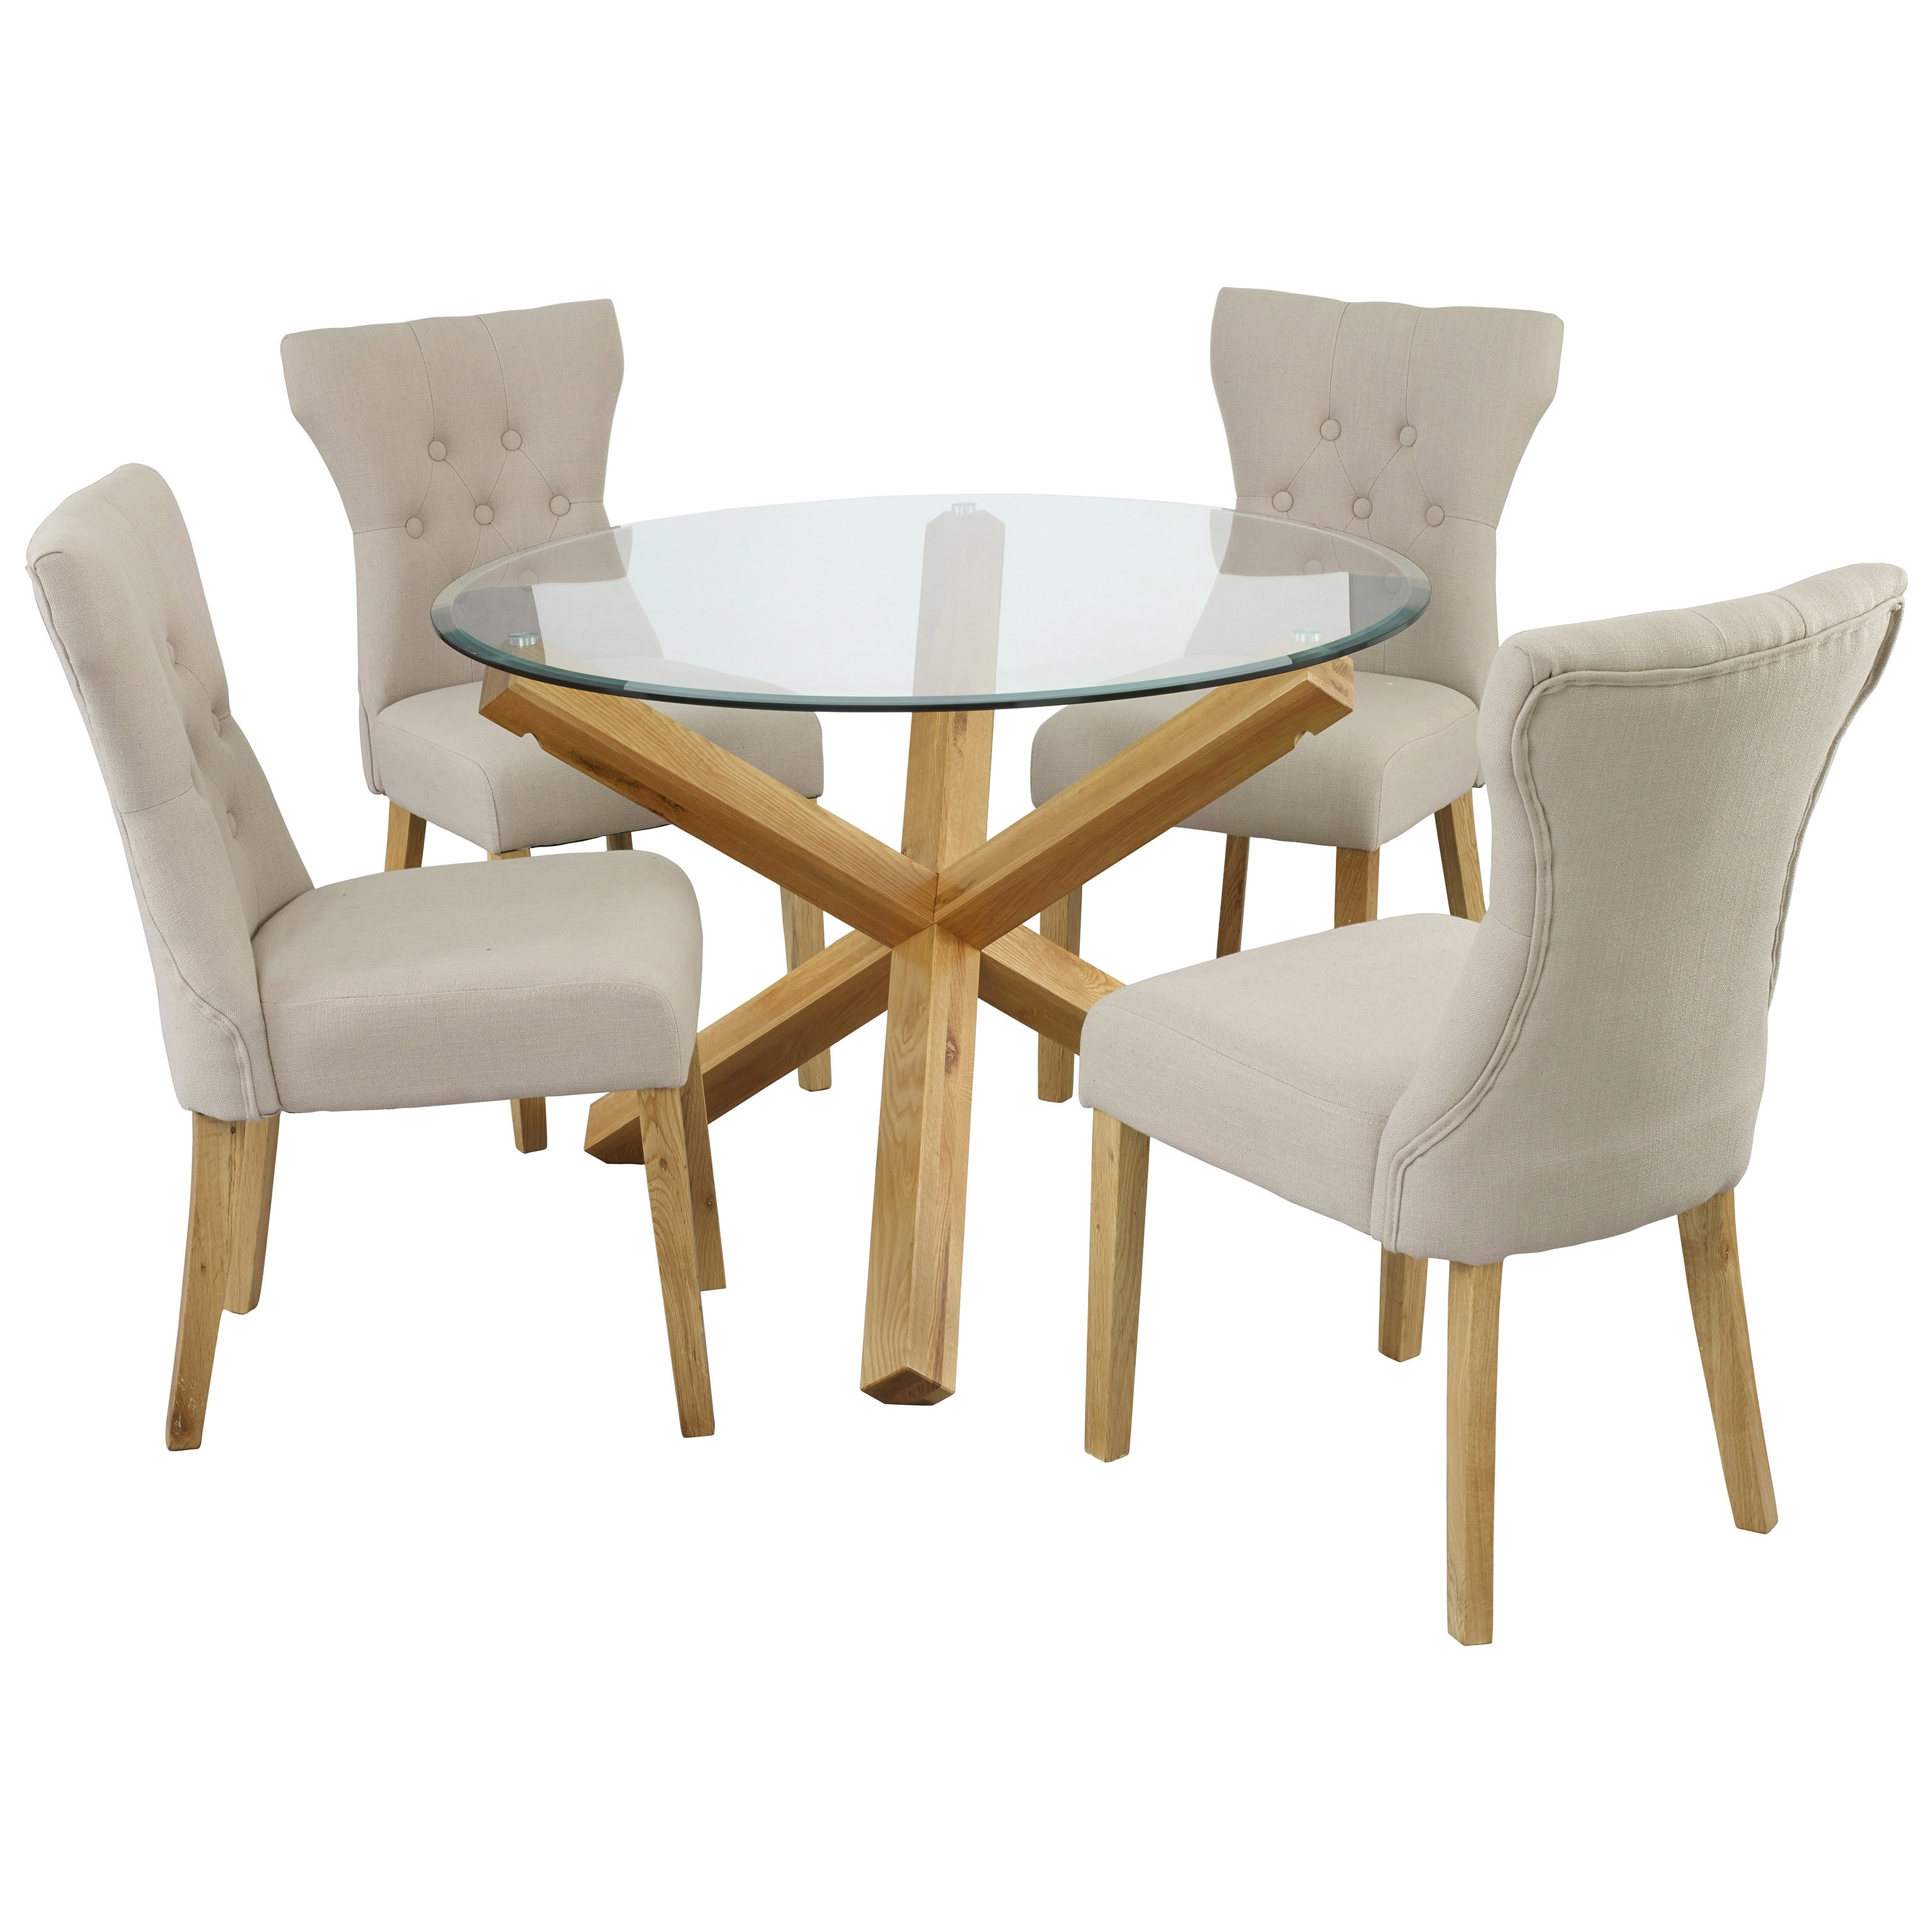 Preferred Oak & Glass Round Dining Table And Chair Set With 4 Fabric Seats Pertaining To Oak Glass Top Dining Tables (View 16 of 25)